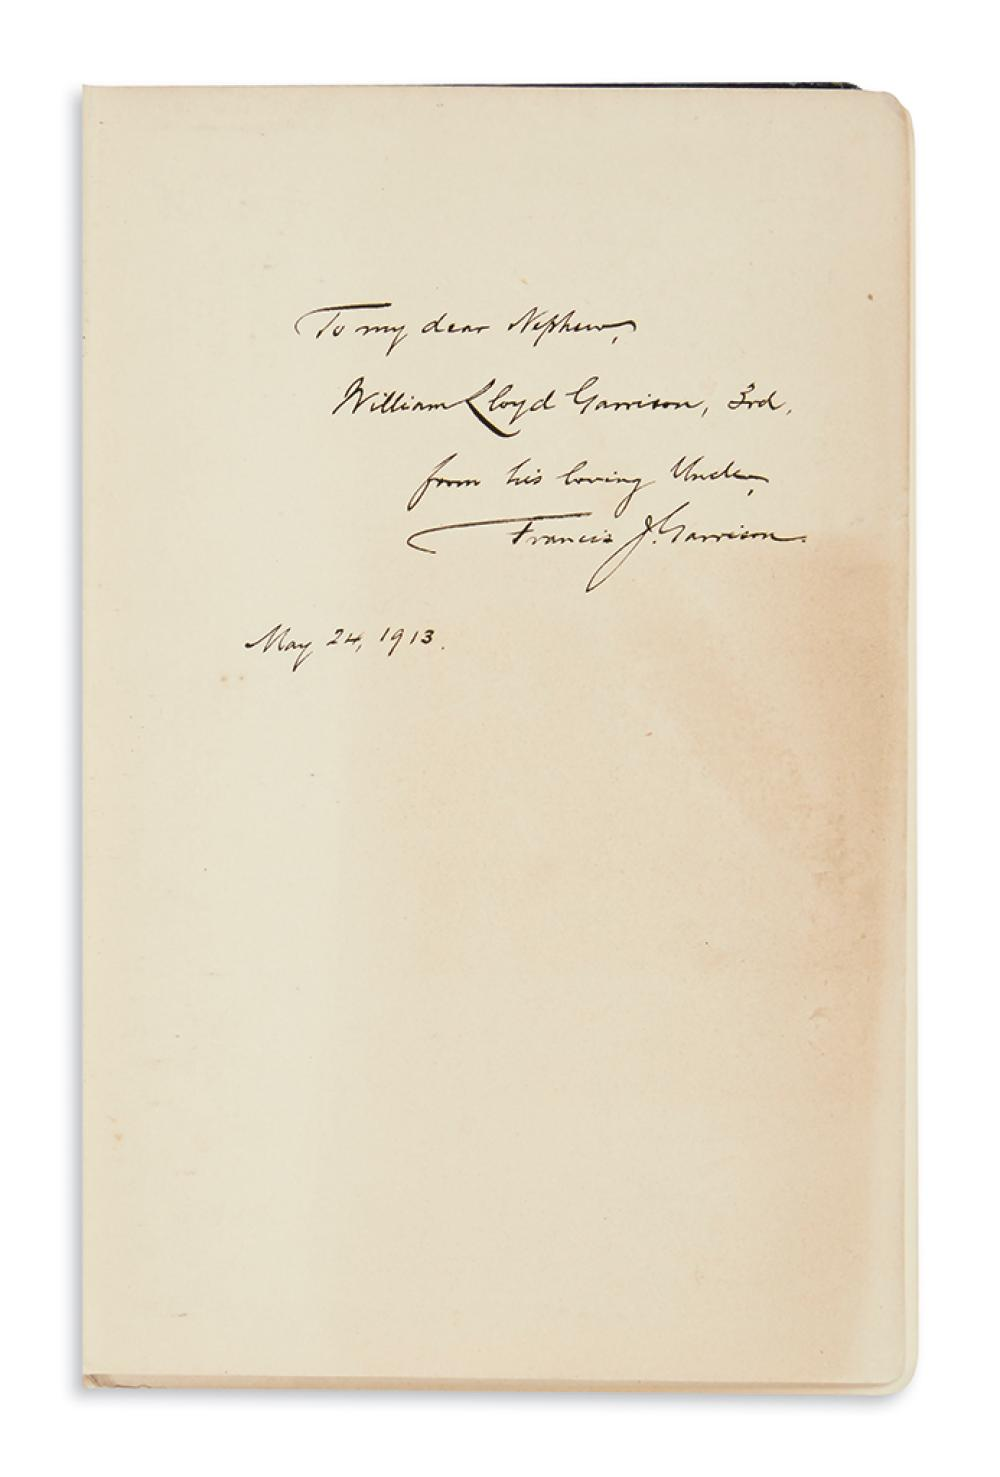 (SLAVERY AND ABOLITION.) Collection of books relating to William Lloyd Garrison, with Garrison family provenance.